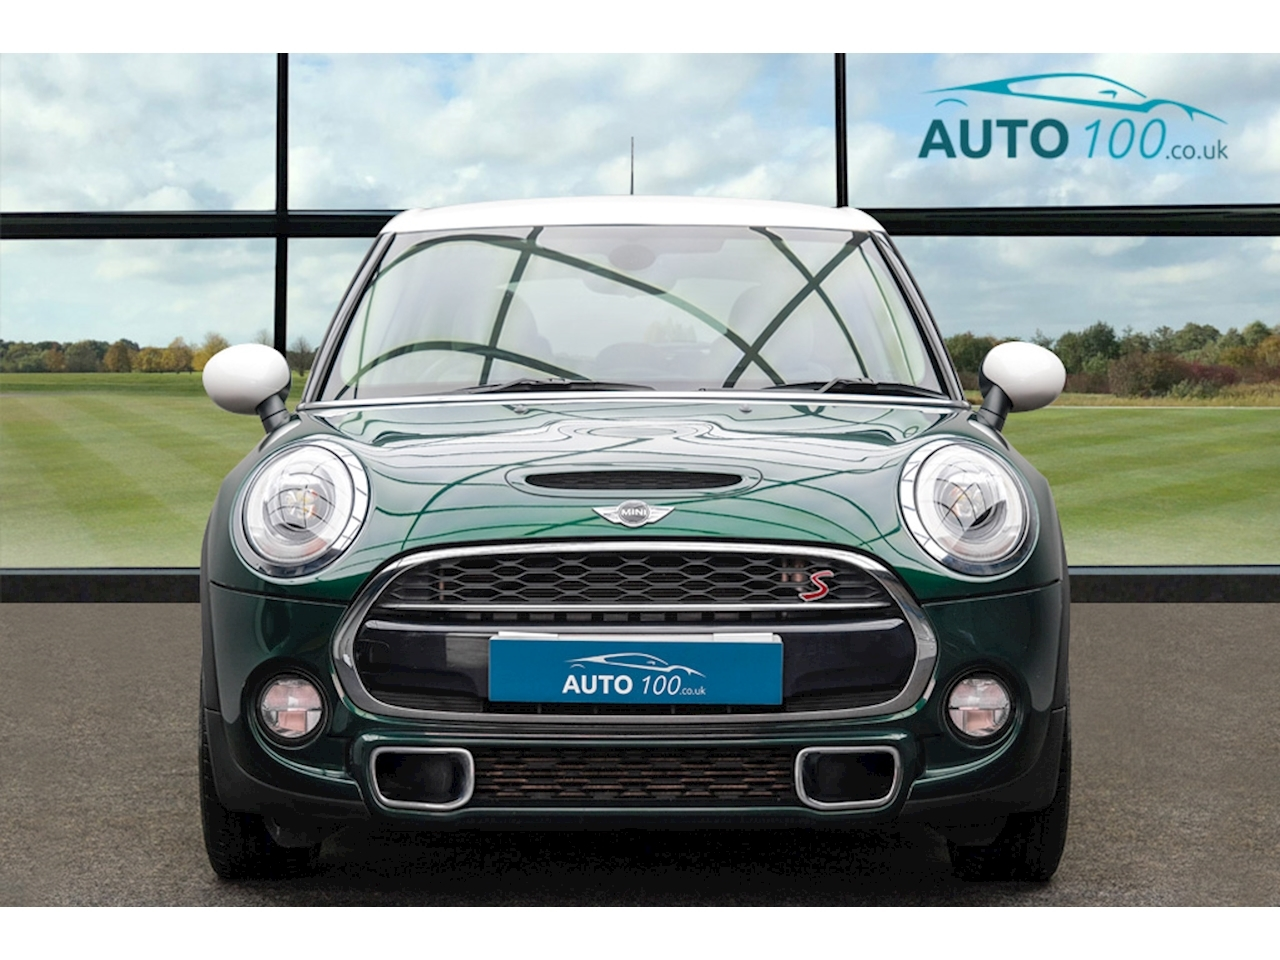 MINI 2.0 Cooper S Hatchback 5dr Petrol Auto (s/s) (192 ps)